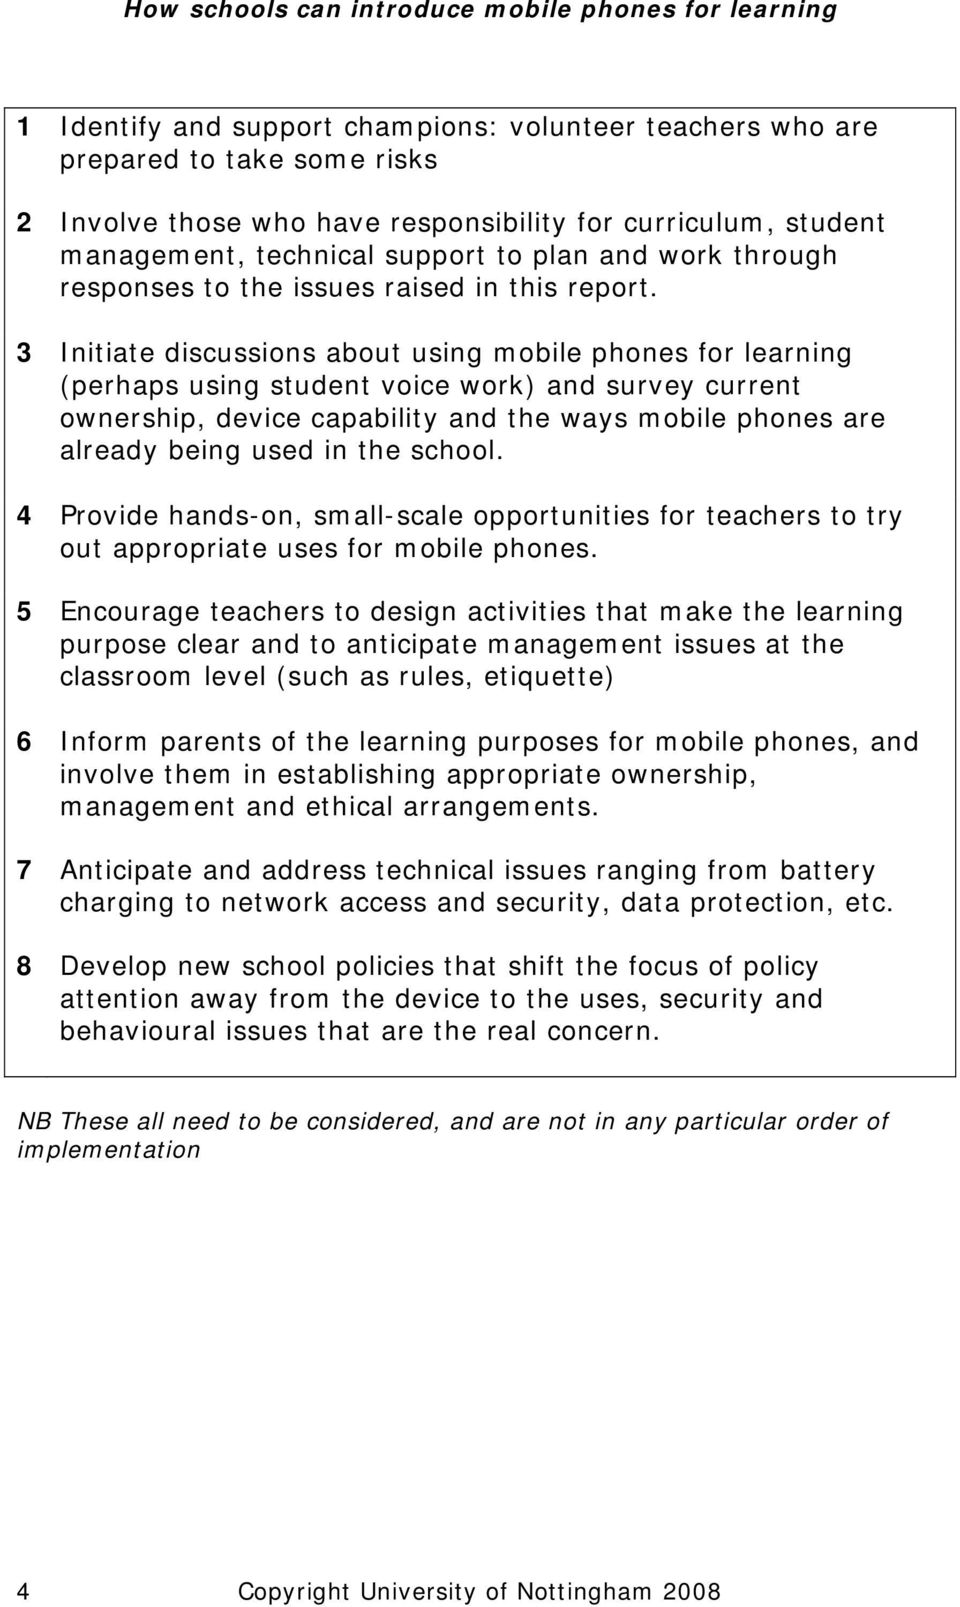 3 Initiate discussions about using mobile phones for learning (perhaps using student voice work) and survey current ownership, device capability and the ways mobile phones are already being used in